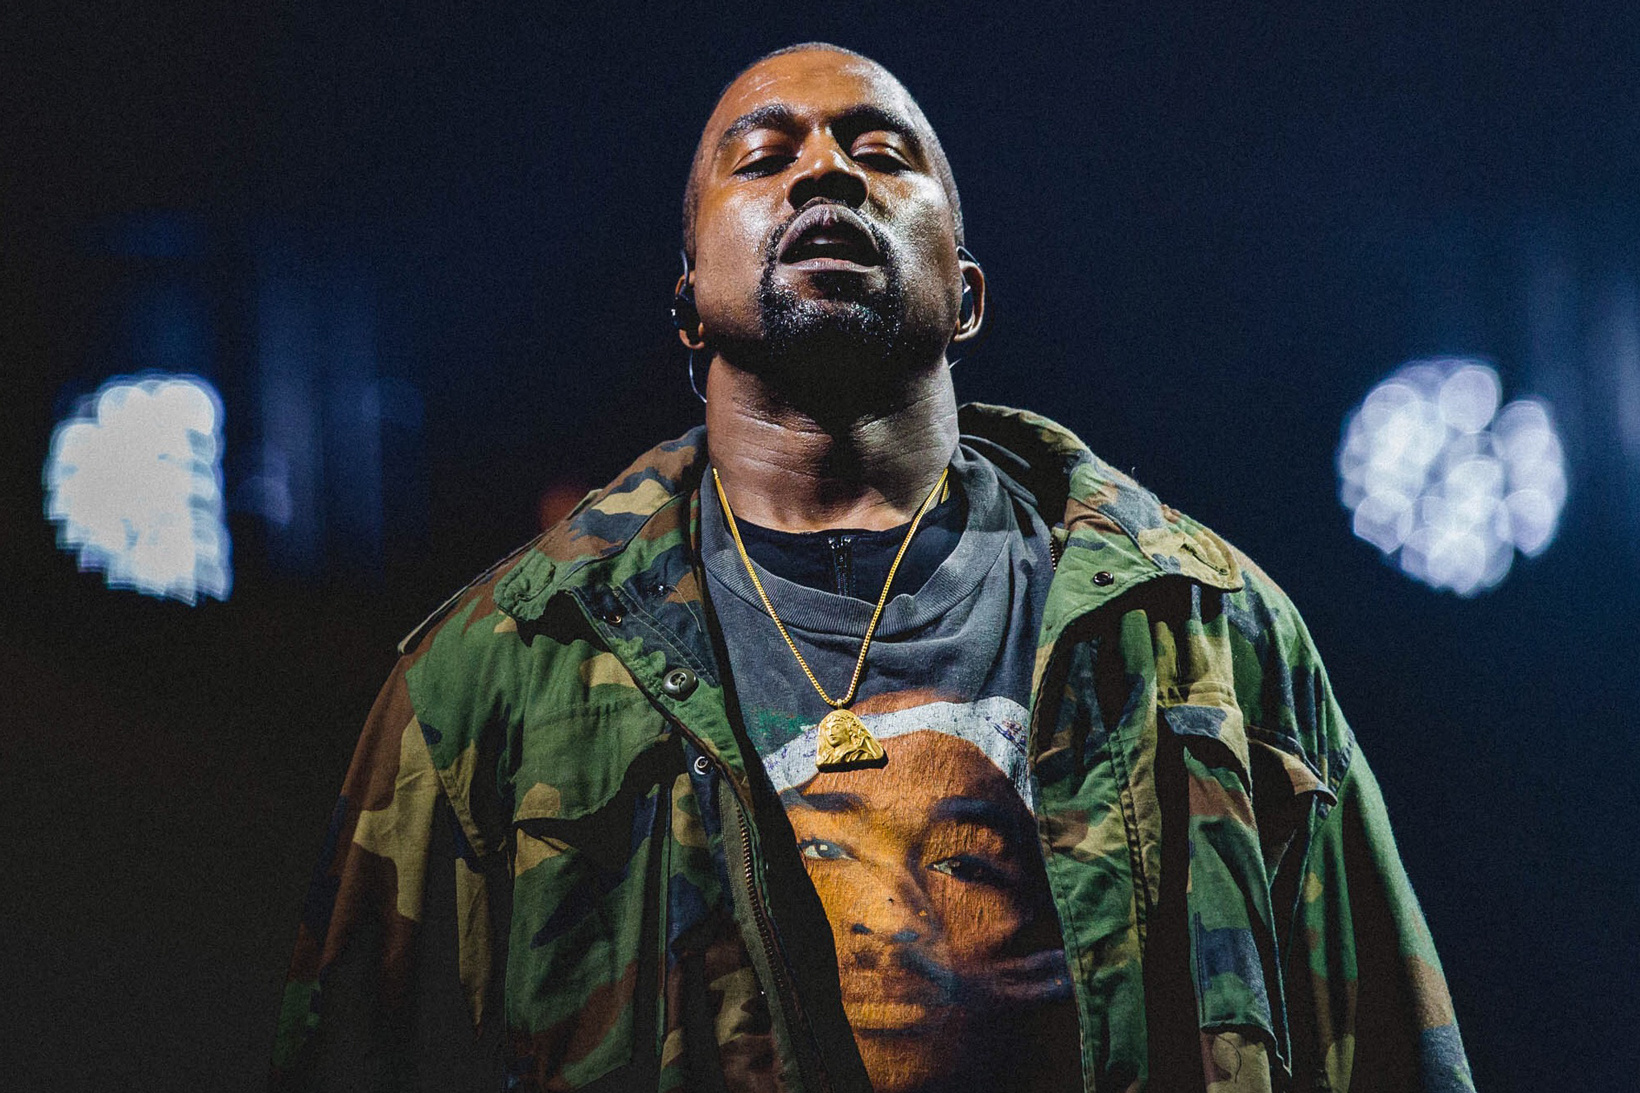 Kanye West Wants To Record Some New Music From His Hospital Bed kanye west 2016 mtv vmas 1